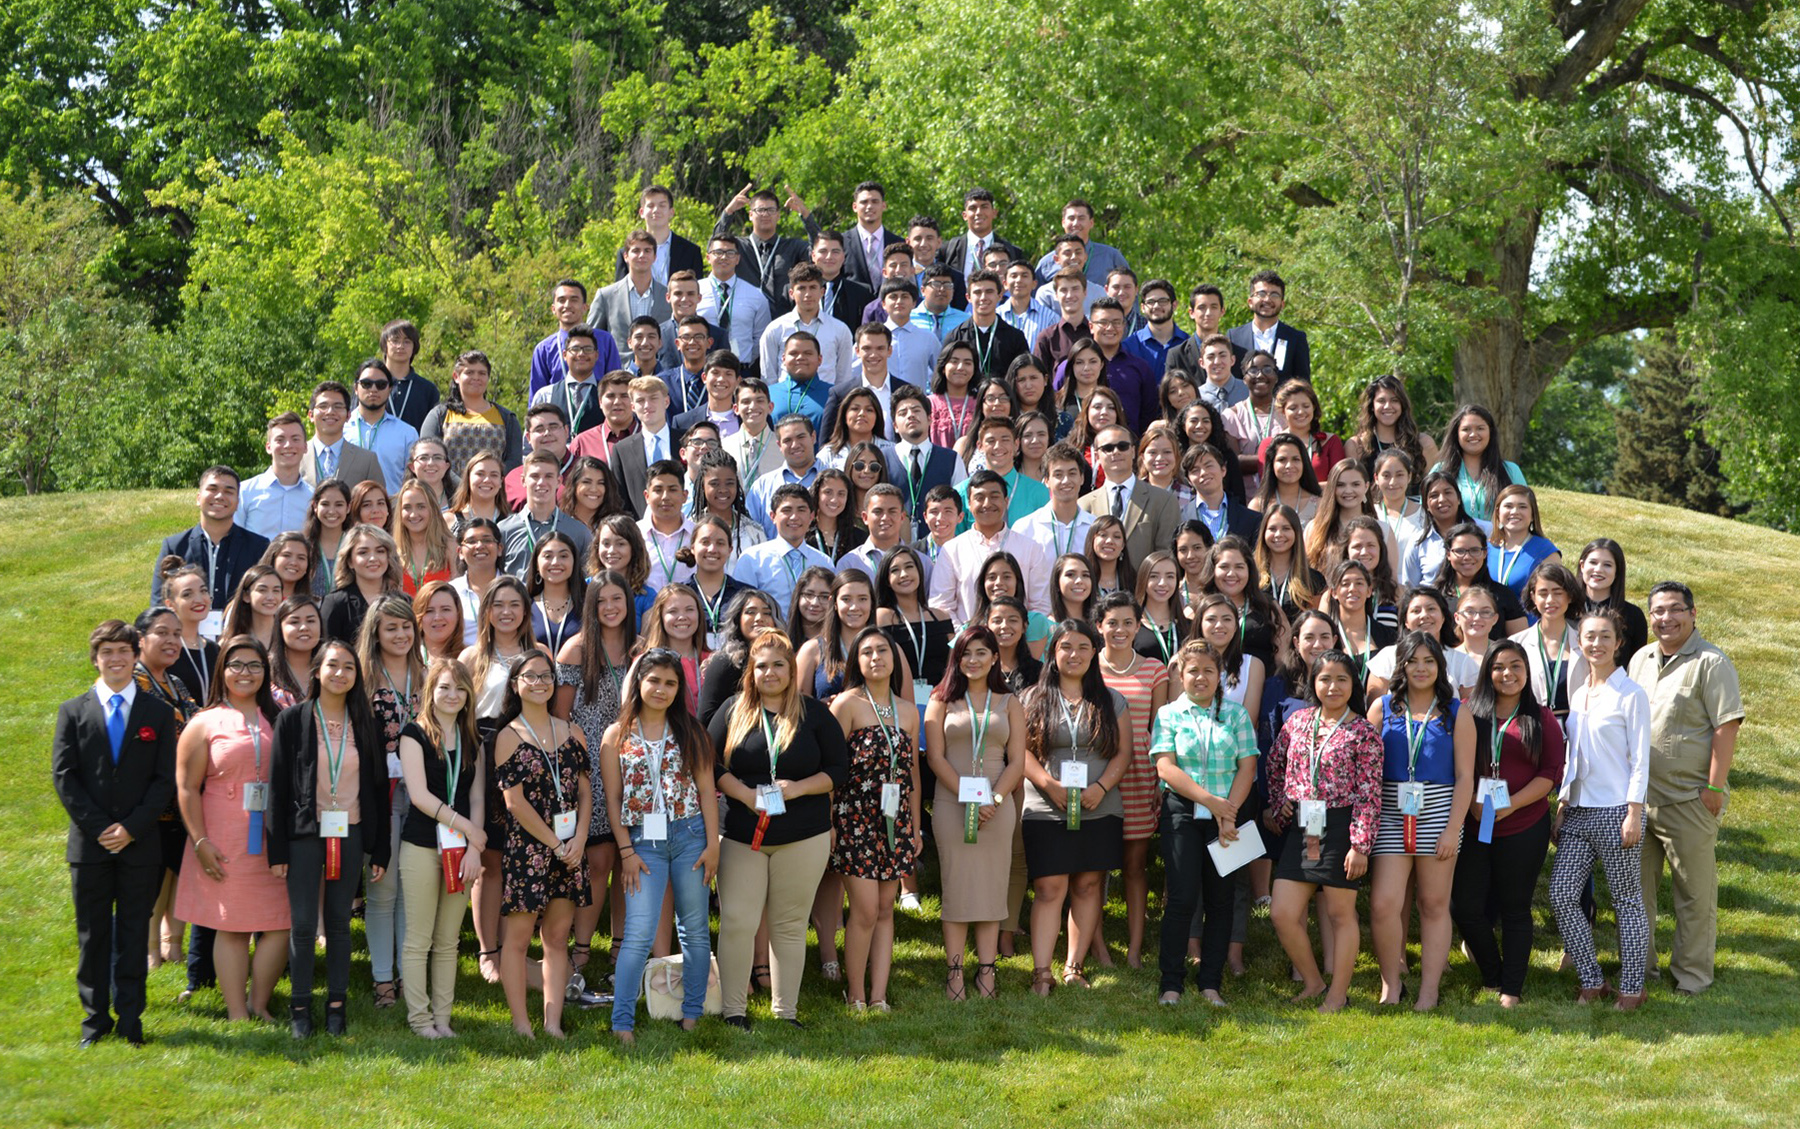 2017 Colorado LDZ student group photo